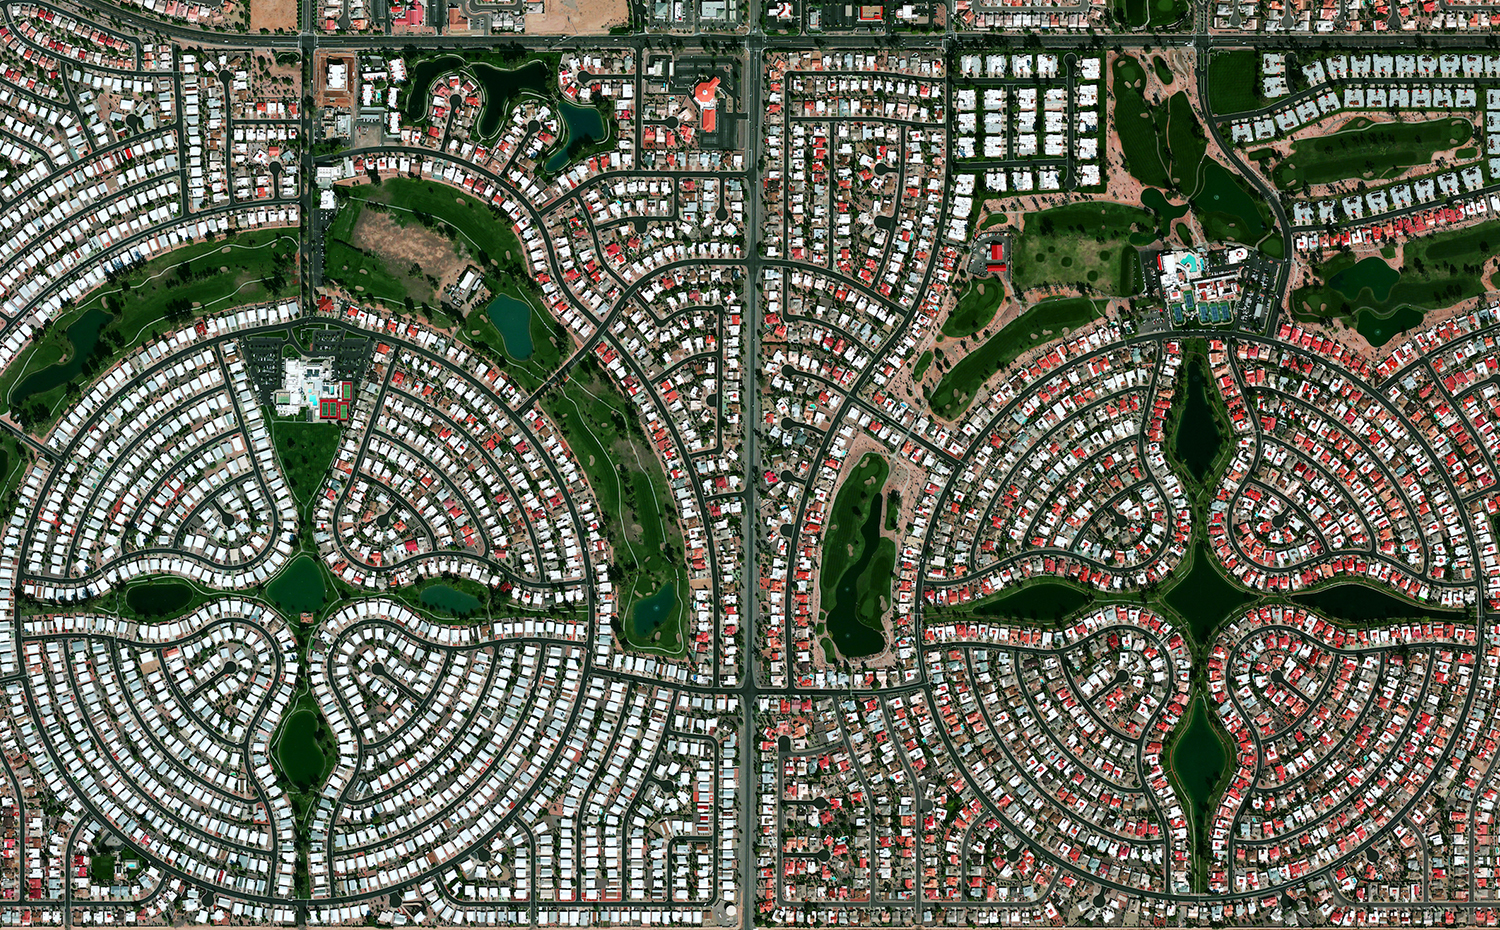 03. Sun Lakes, Arizona. Benjamin Grant / Satellite imagery